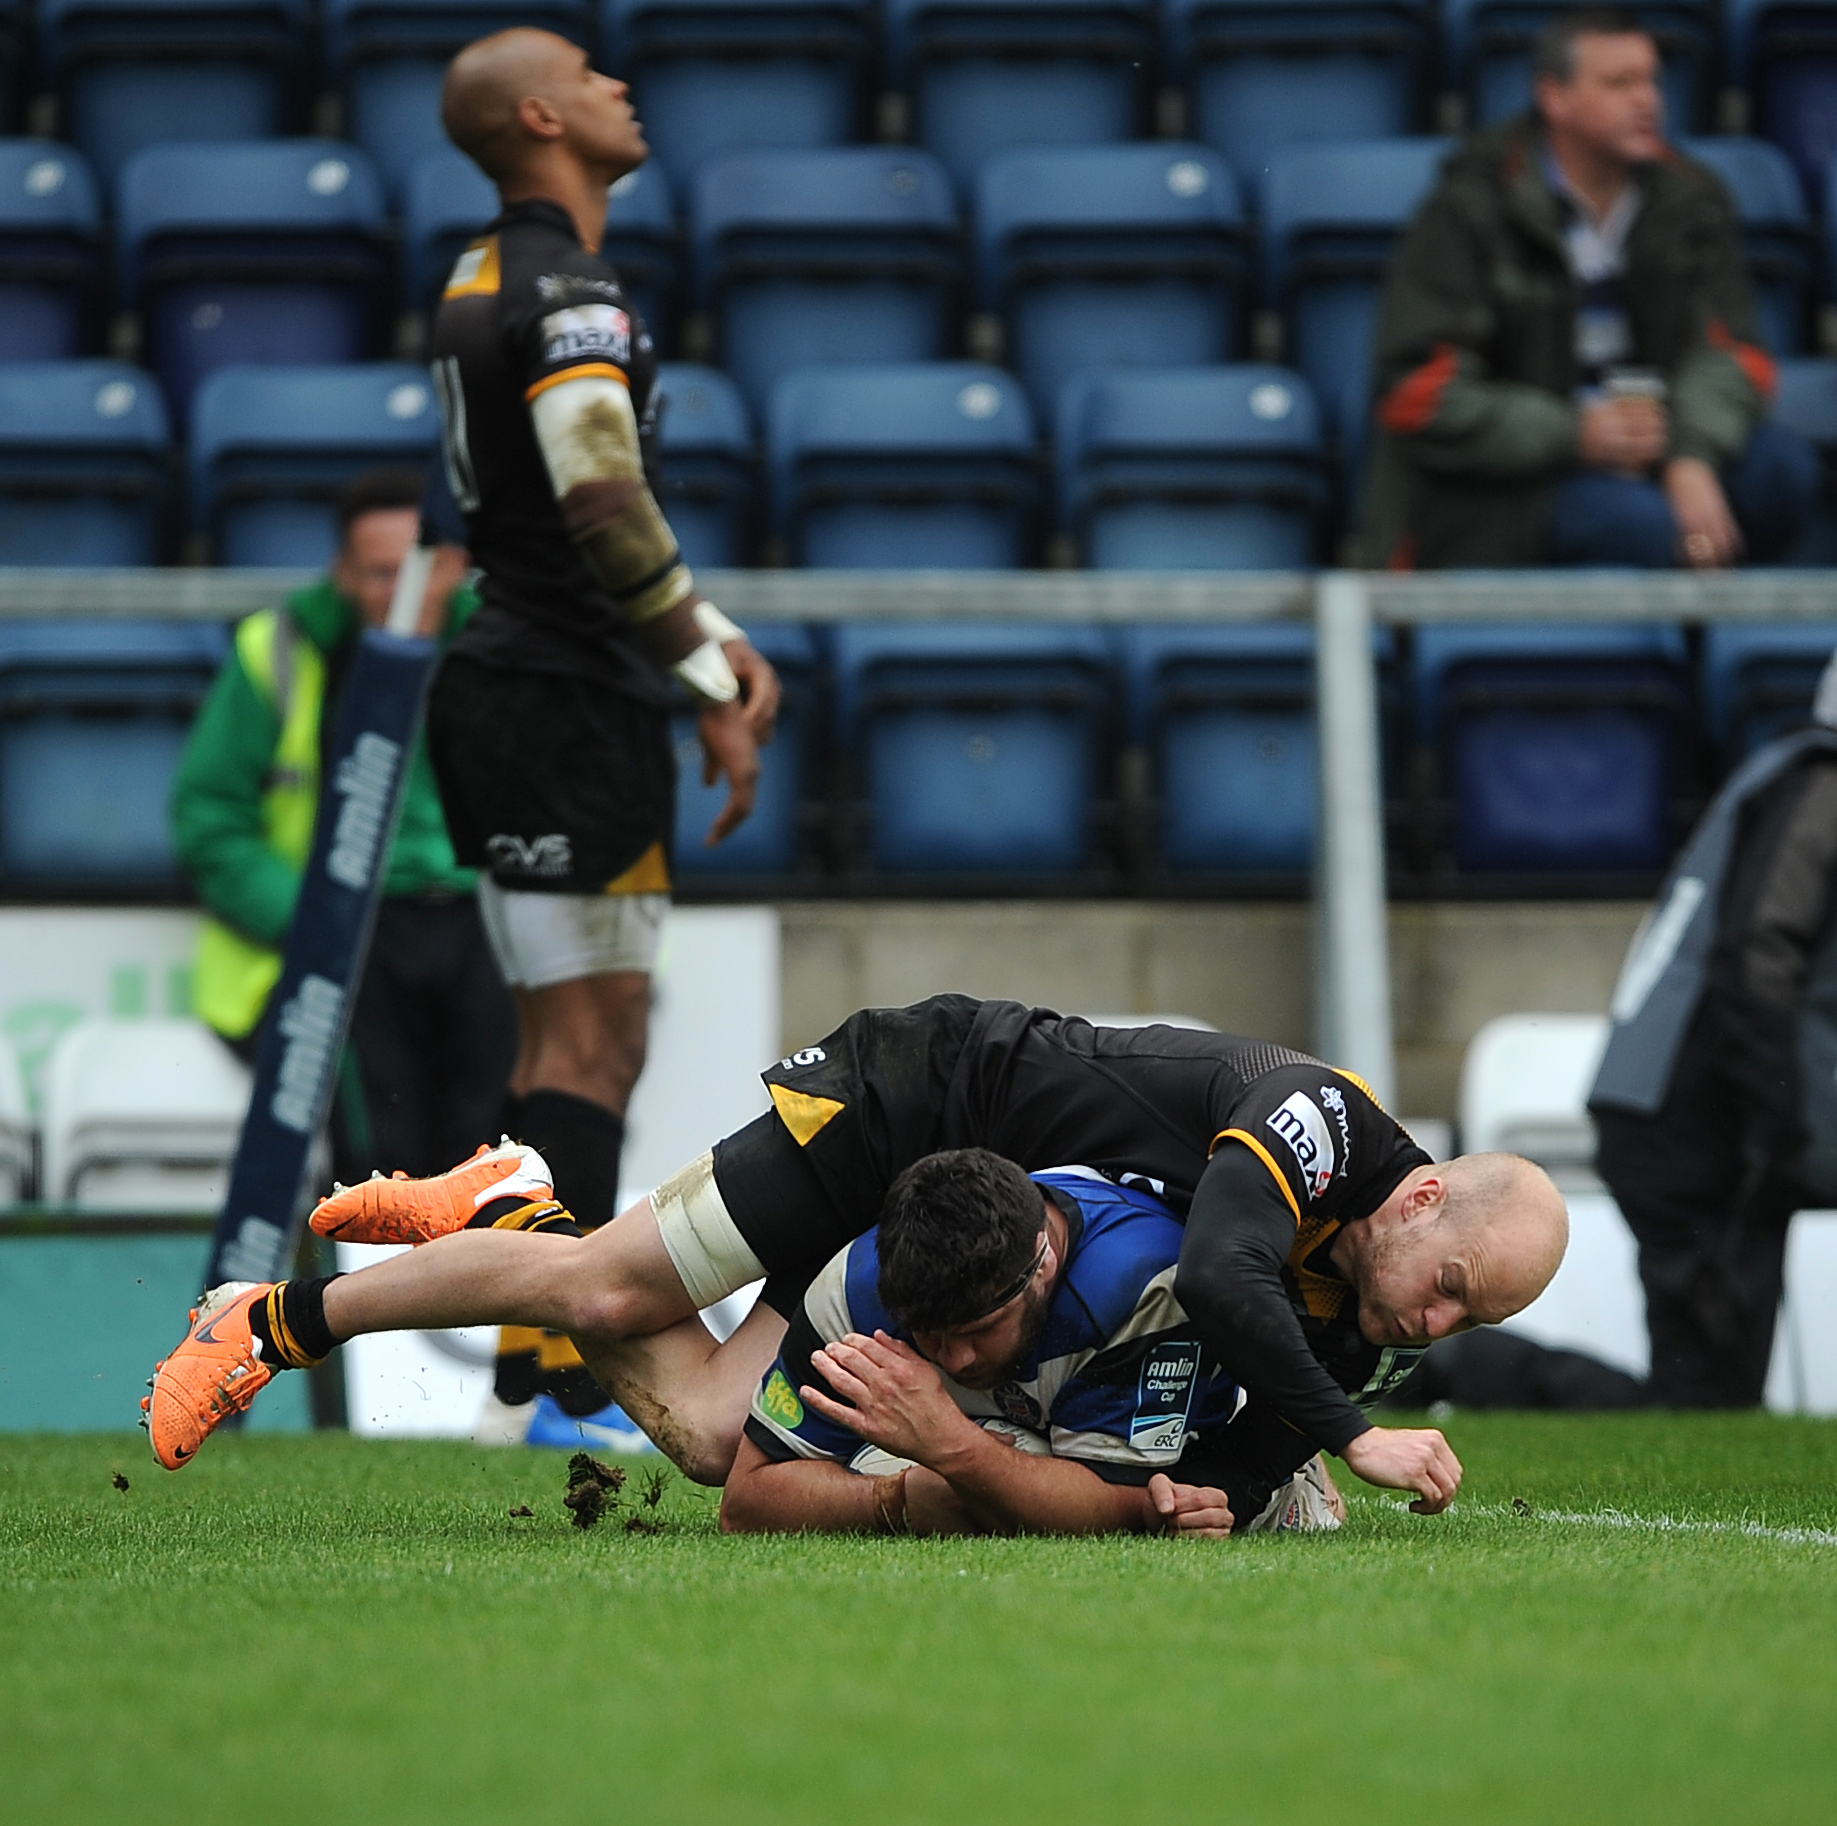 Bath's Rob Webber scores his sides second try of the game under pressure from Wasps' Joe Simpson